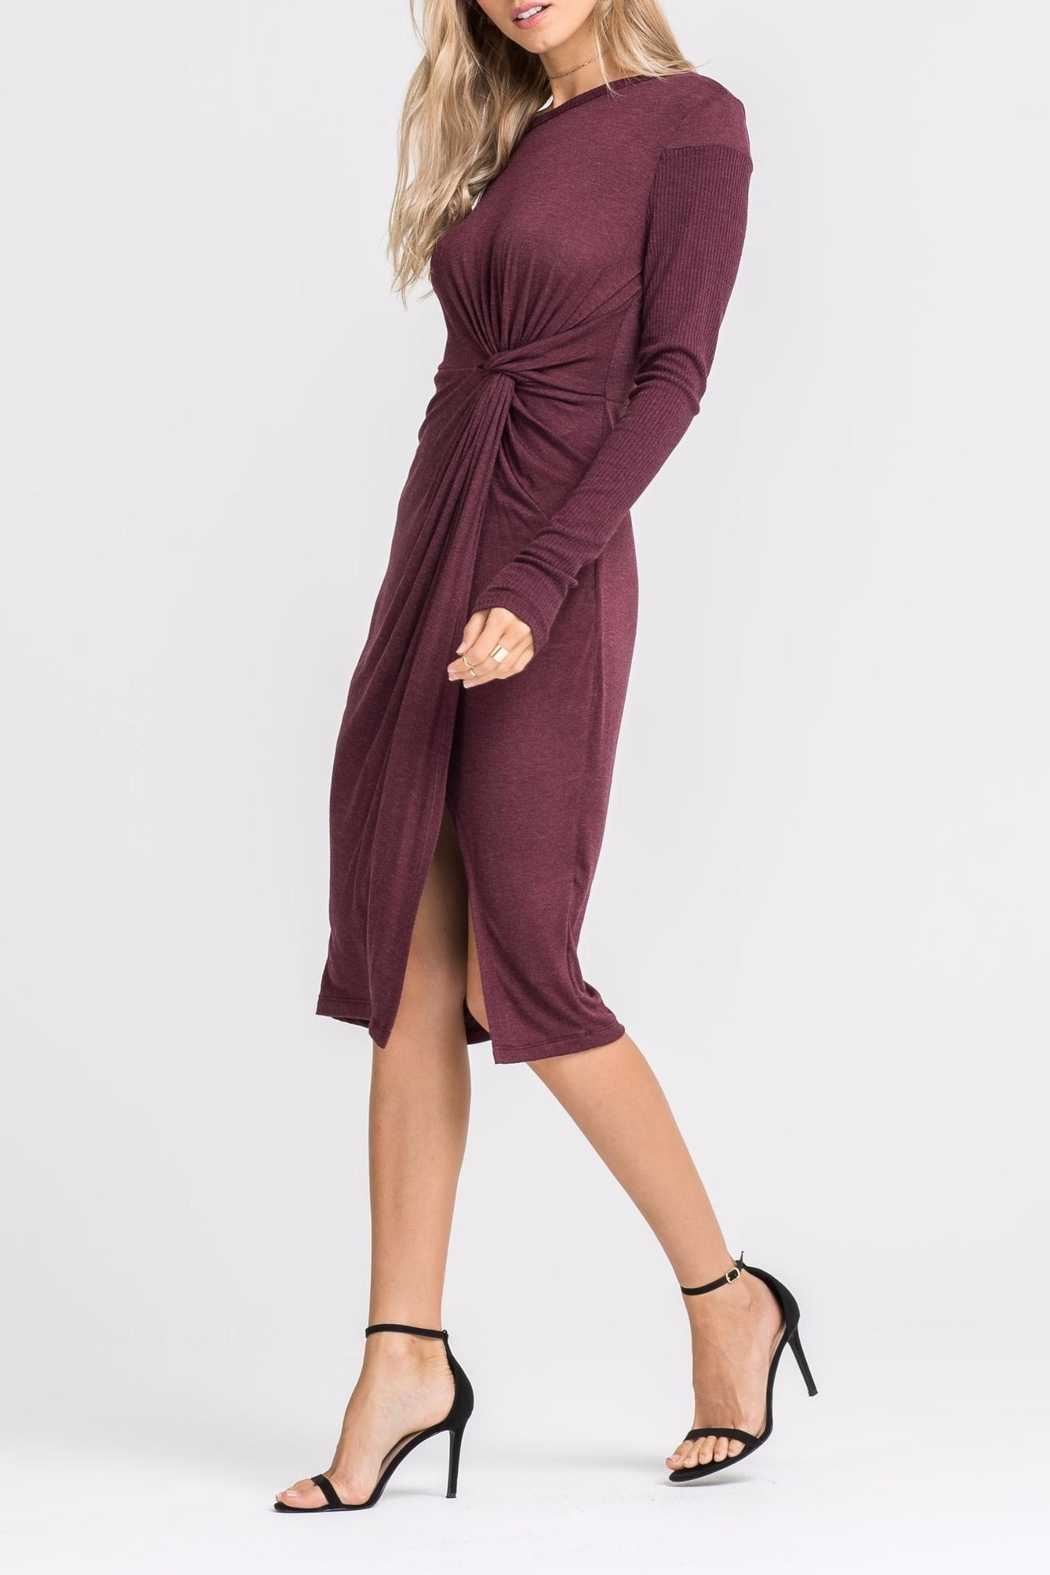 Lush Knotted Front Dress - Front Full Image